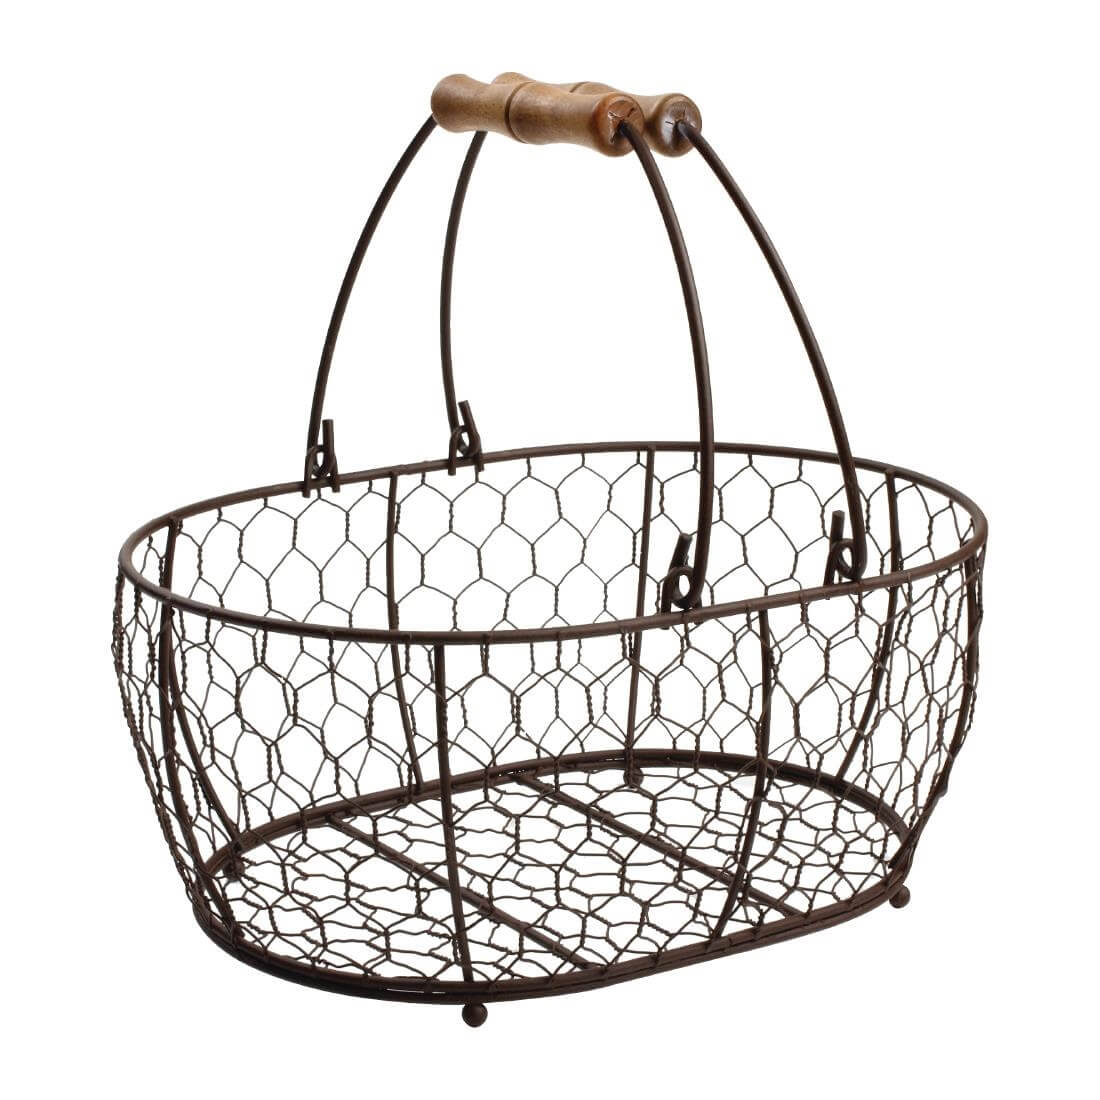 T&G Provence Wire Oval Basket with Handles Brown